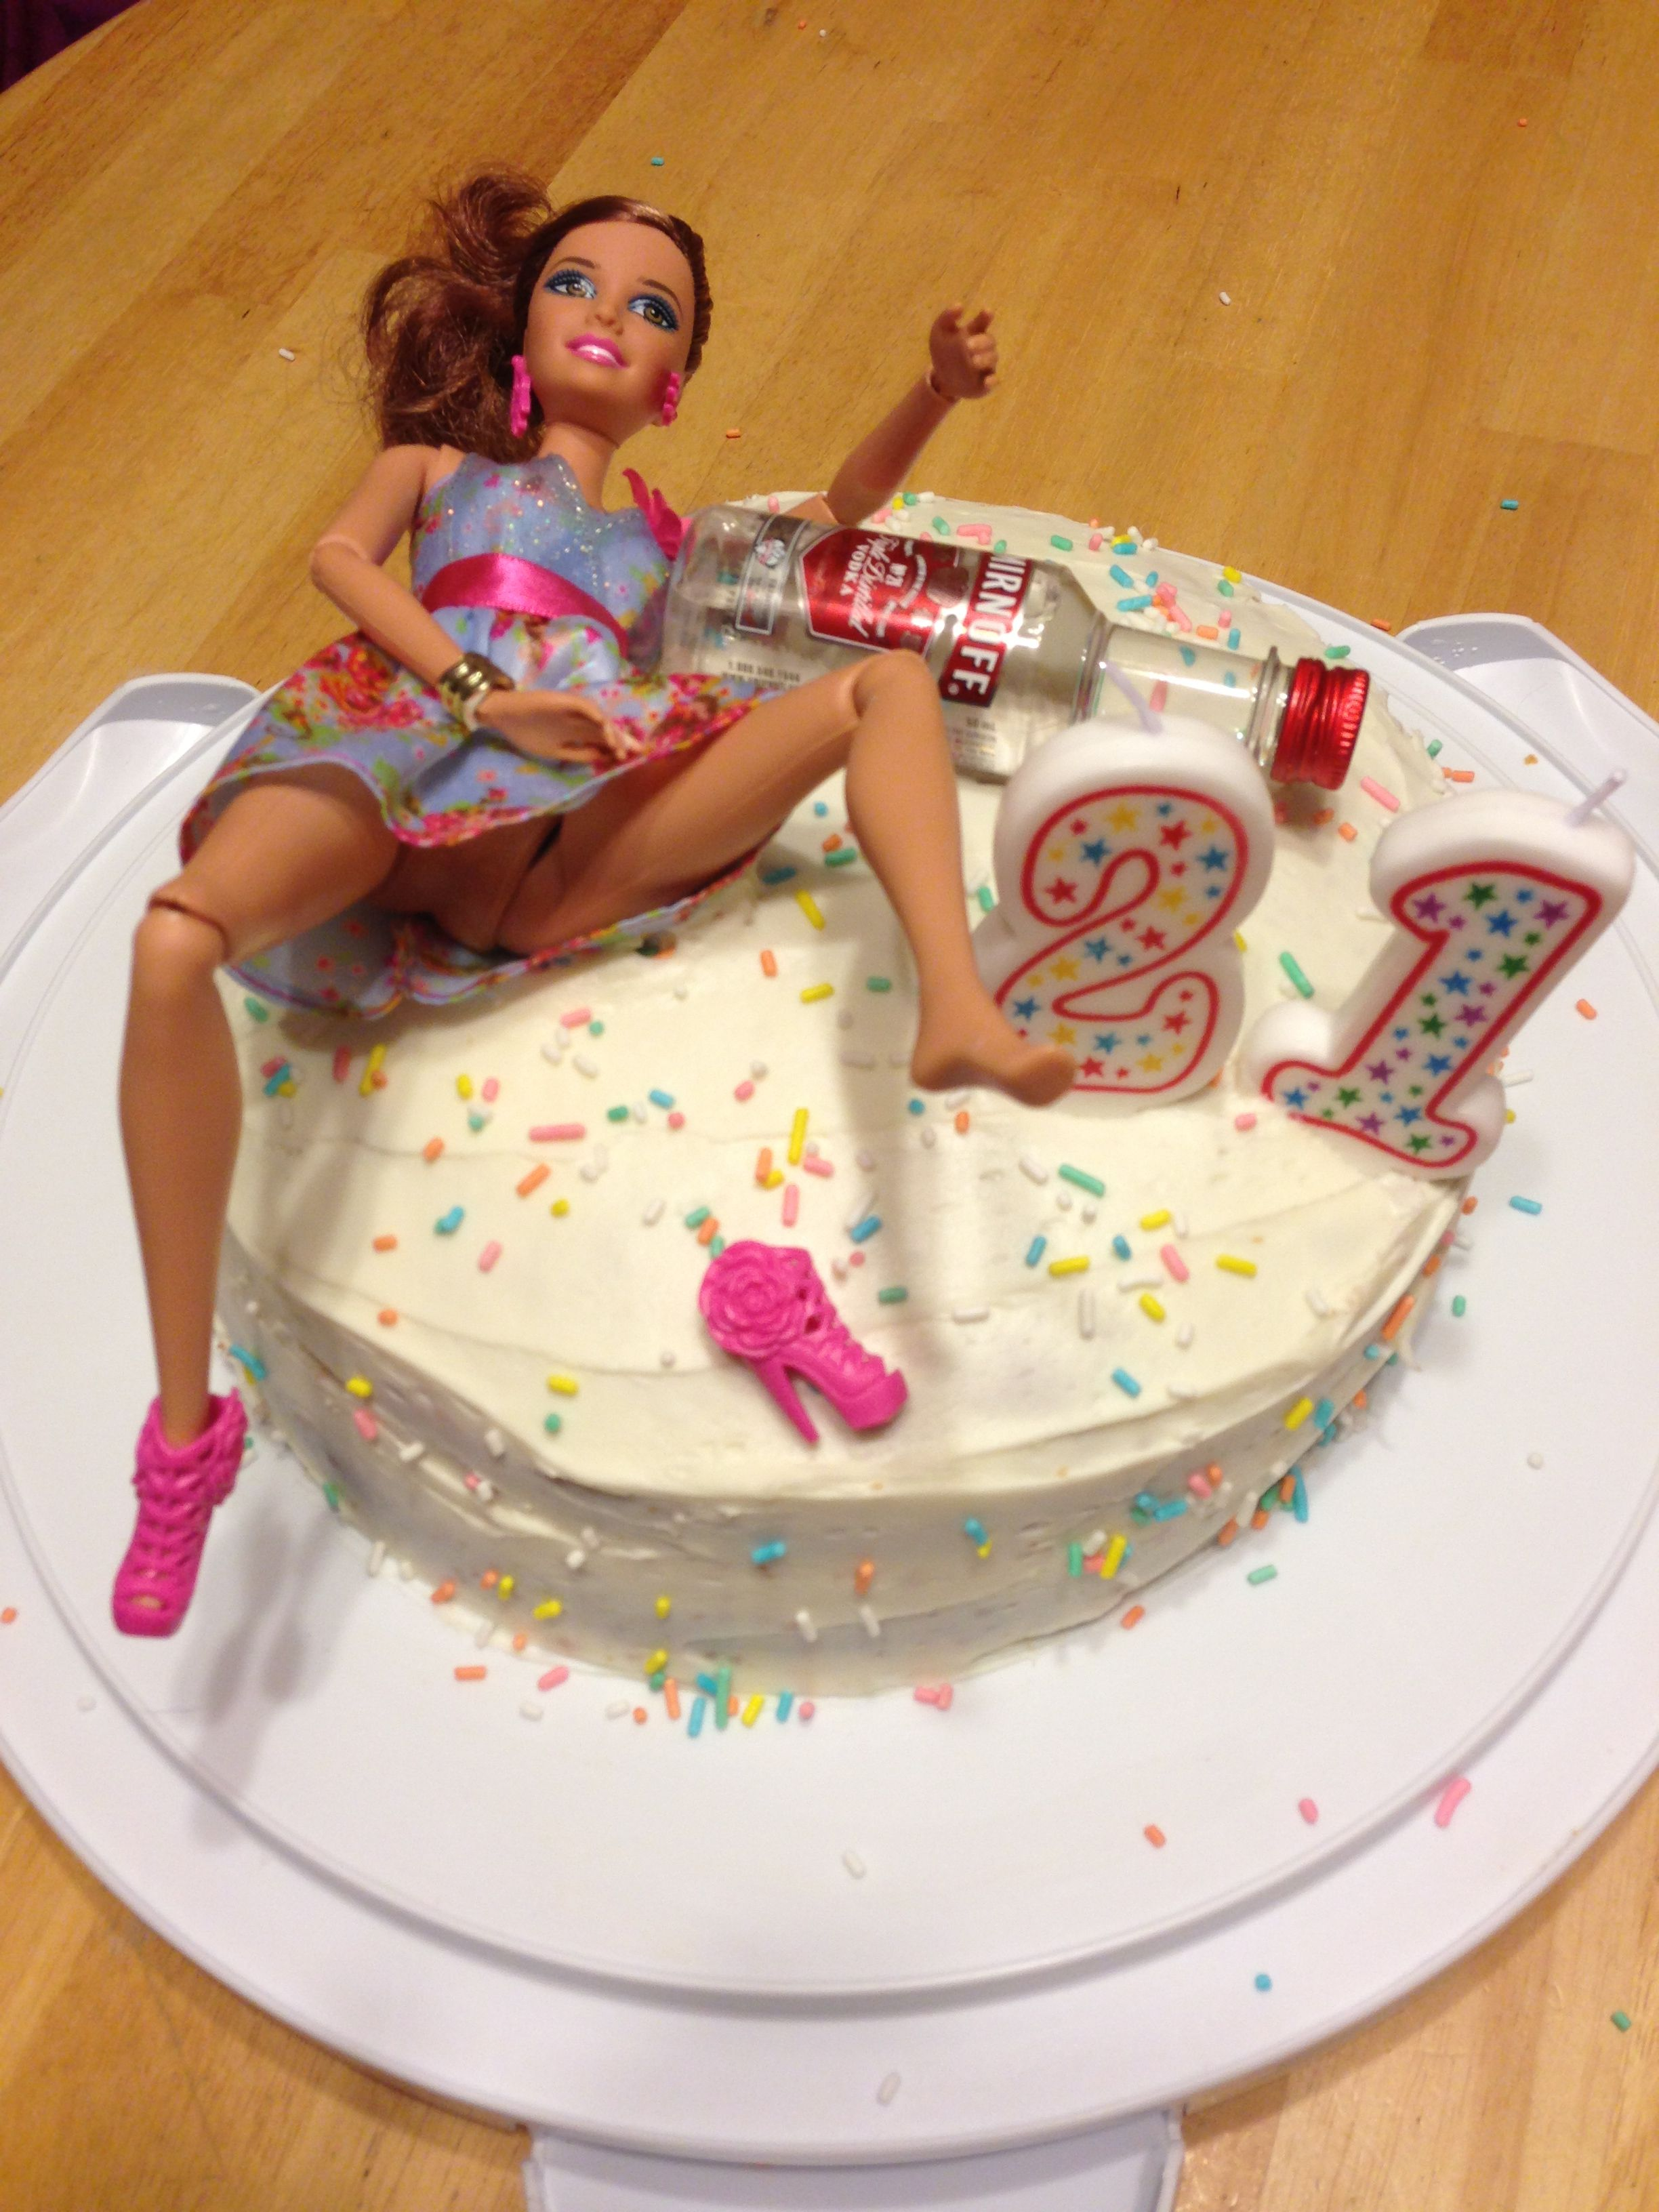 I want this for my 21st birthday cake! | 21st birthday cakes